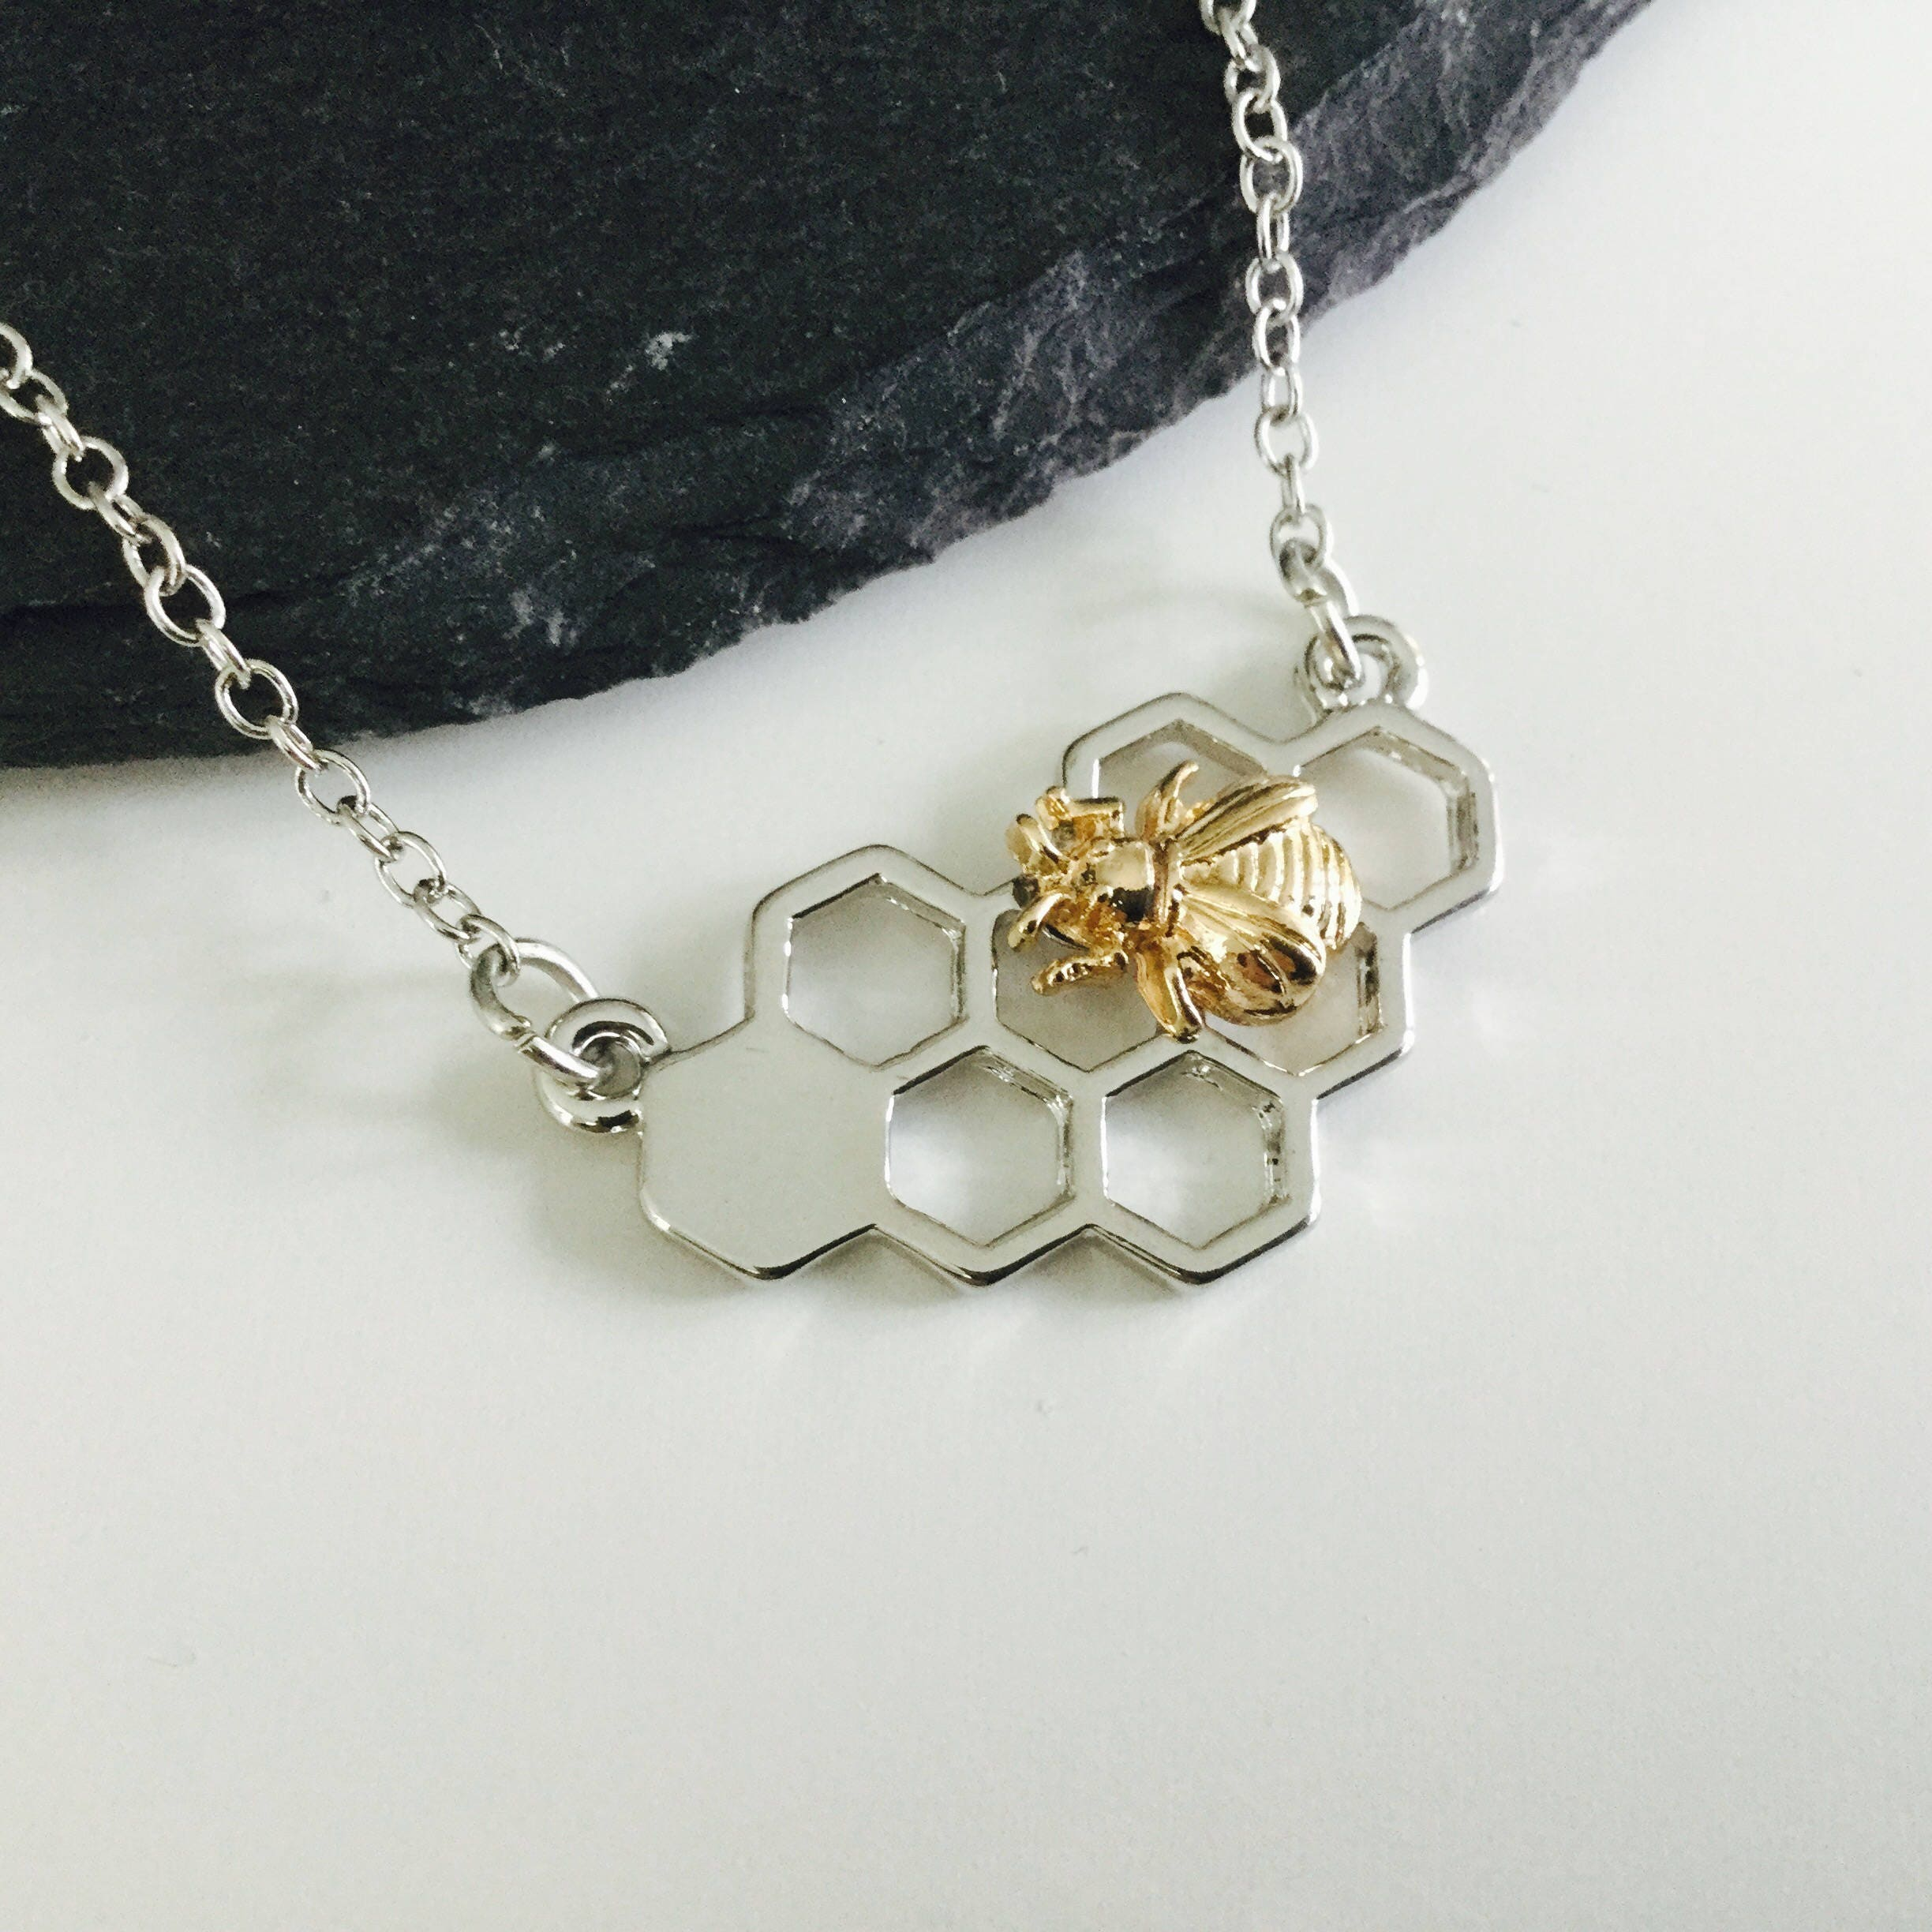 drop antique my necklace products filigree for bee yellow silver original pendant inspired swarovski topaz necklaces everyday antiqued victorian honey collections